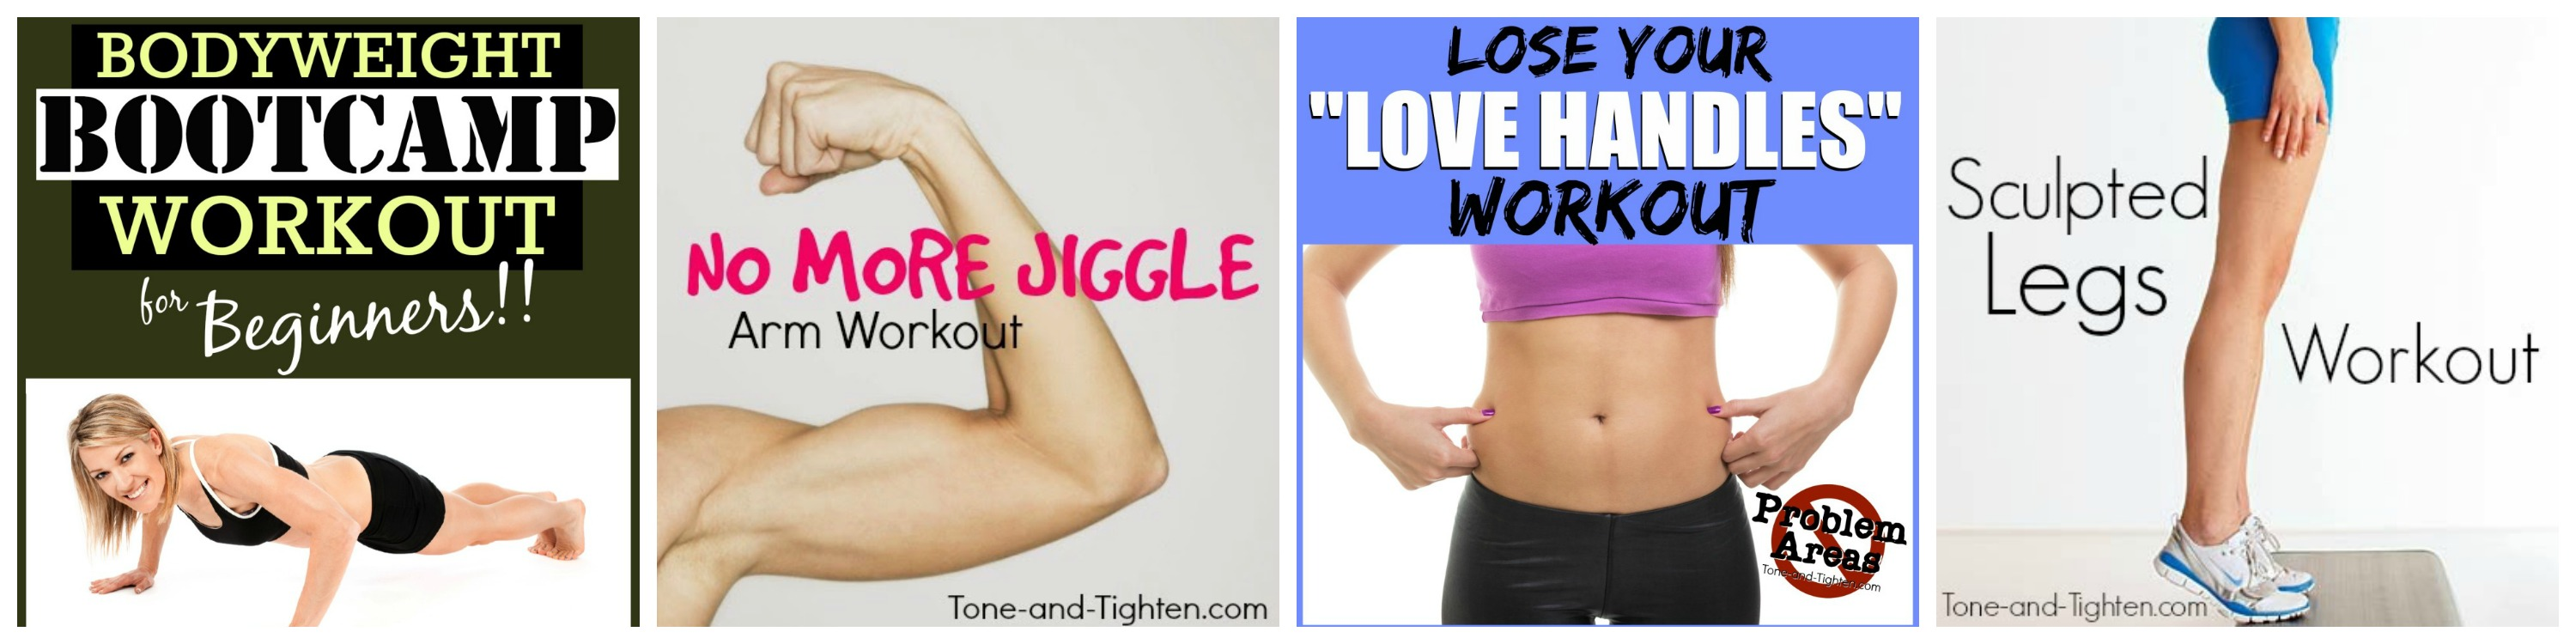 Workouts on Tone-and-Tighten